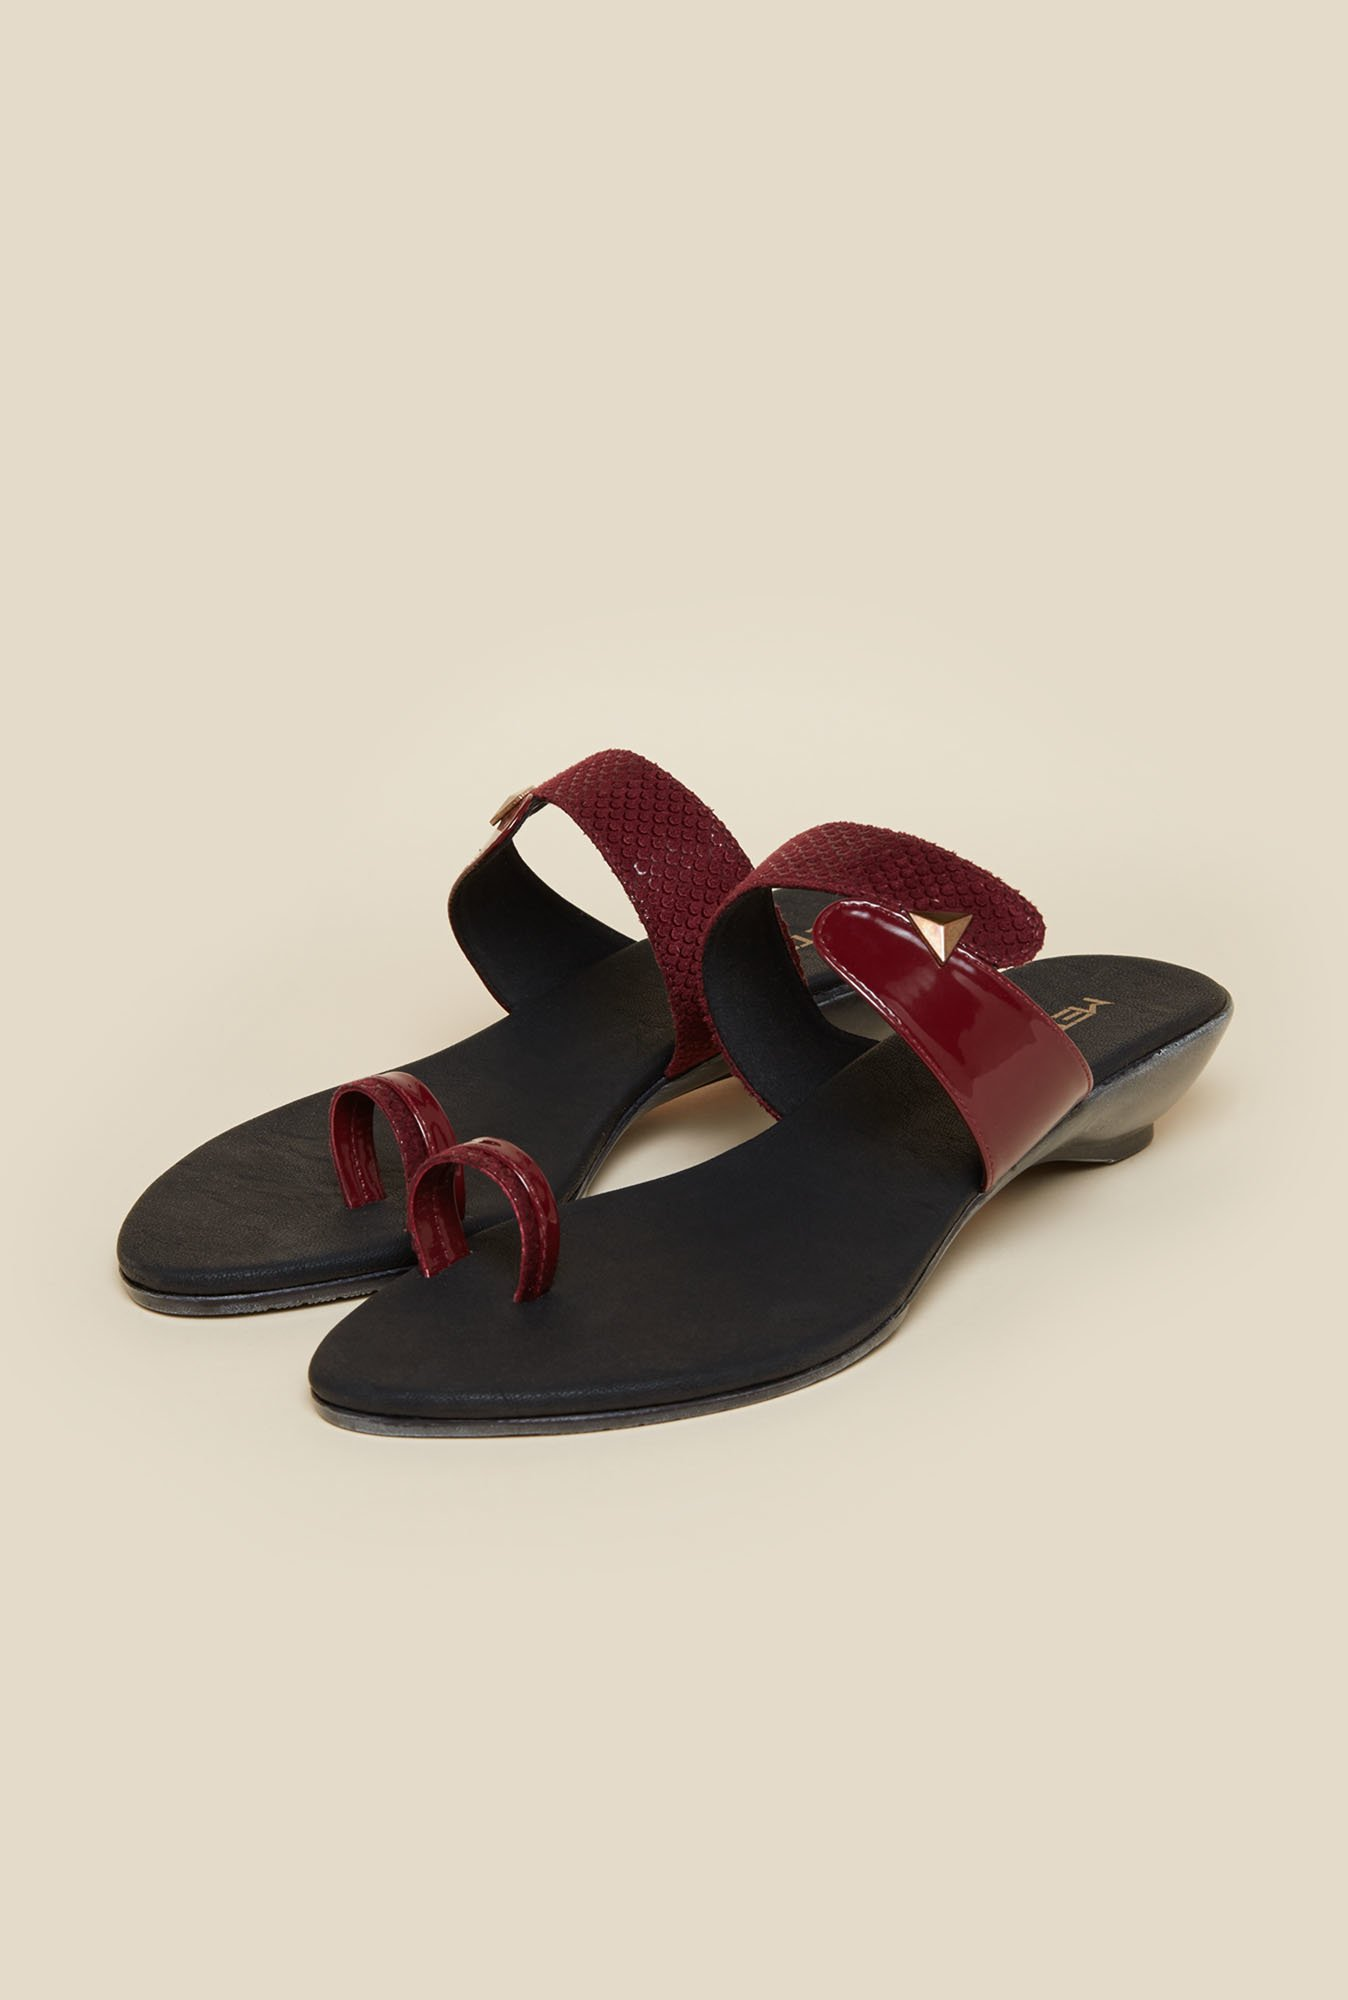 Metro Maroon Toe Ring Flat Sandals